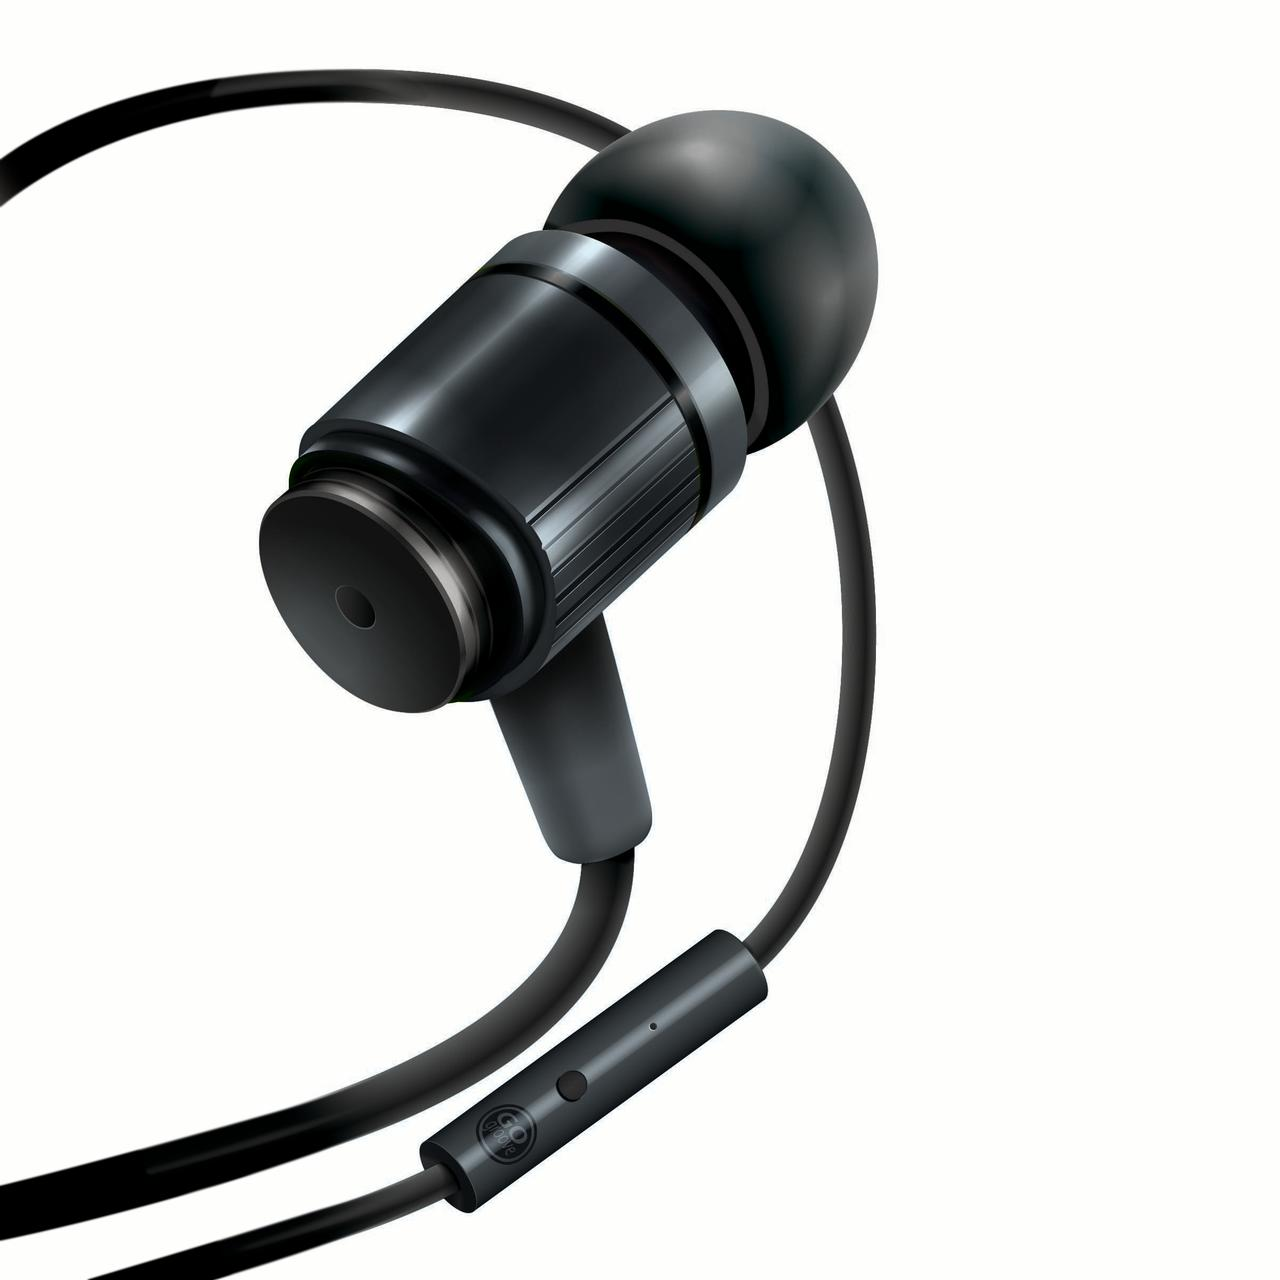 Rugged AudiOHM RNF Black Ergonomic Earbud Headphones with Lifetime Warranty by GOgroove feat. Handsfree Mic and Military Grade Materials used in Body Armor for Apple , Samsung , HTC and More